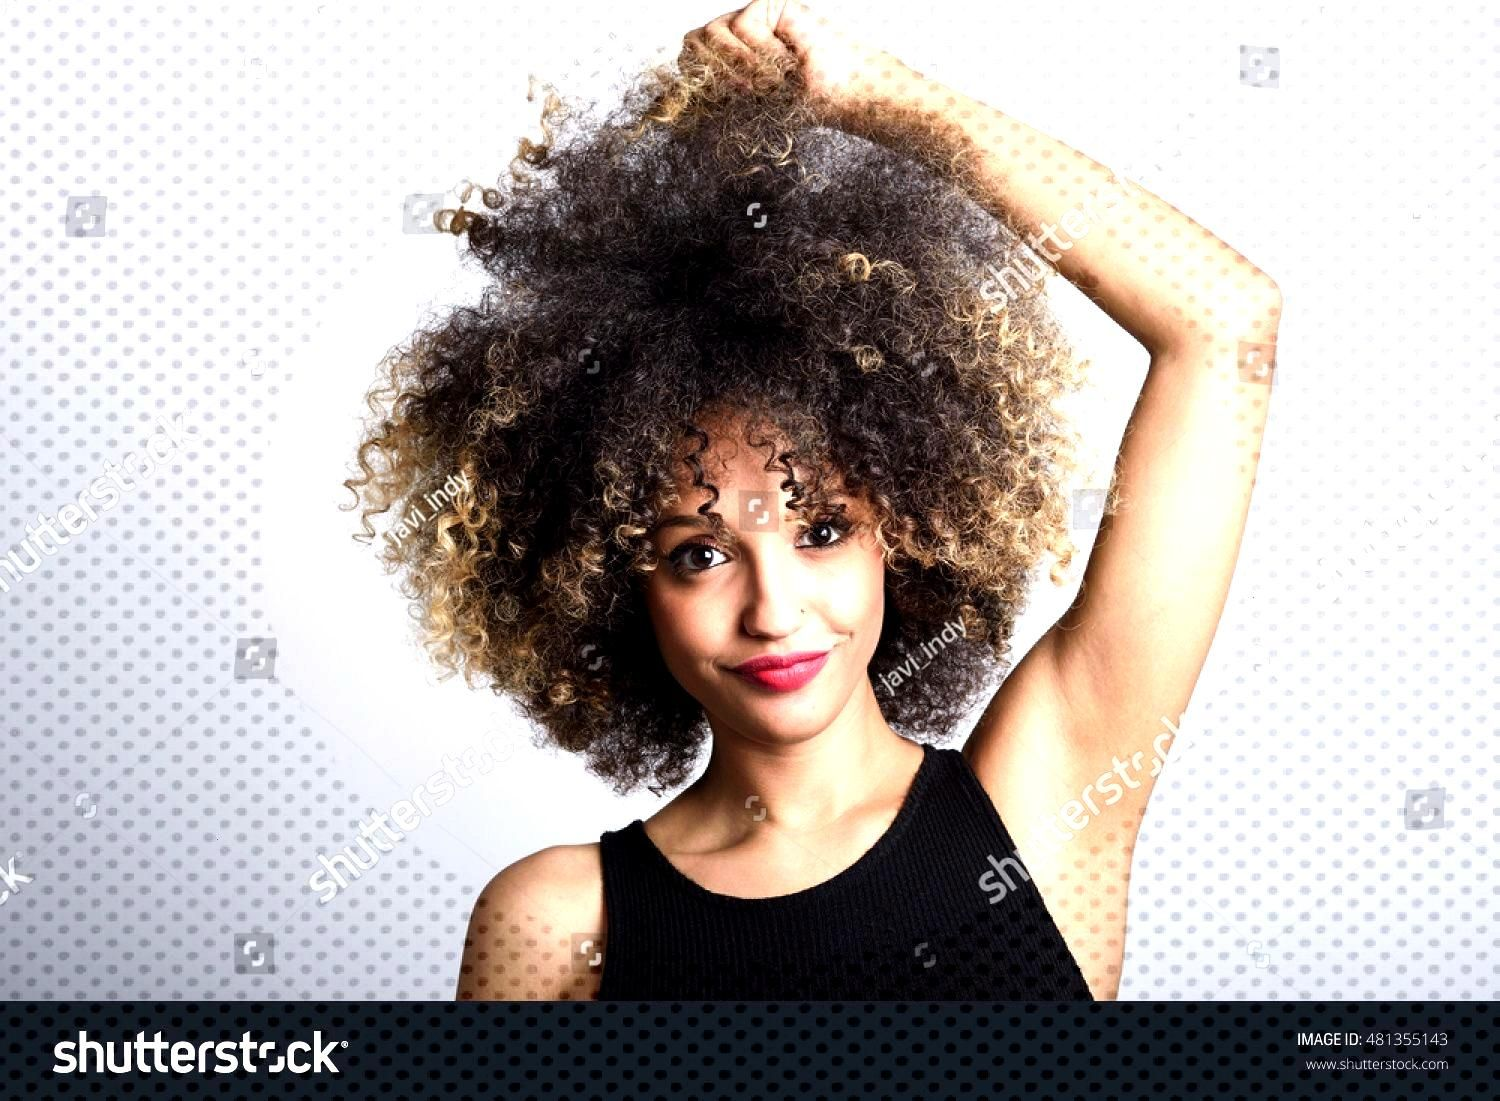 Young black woman with afro hairstyle smiling. Girl wearing black dress. Studio shot. ,